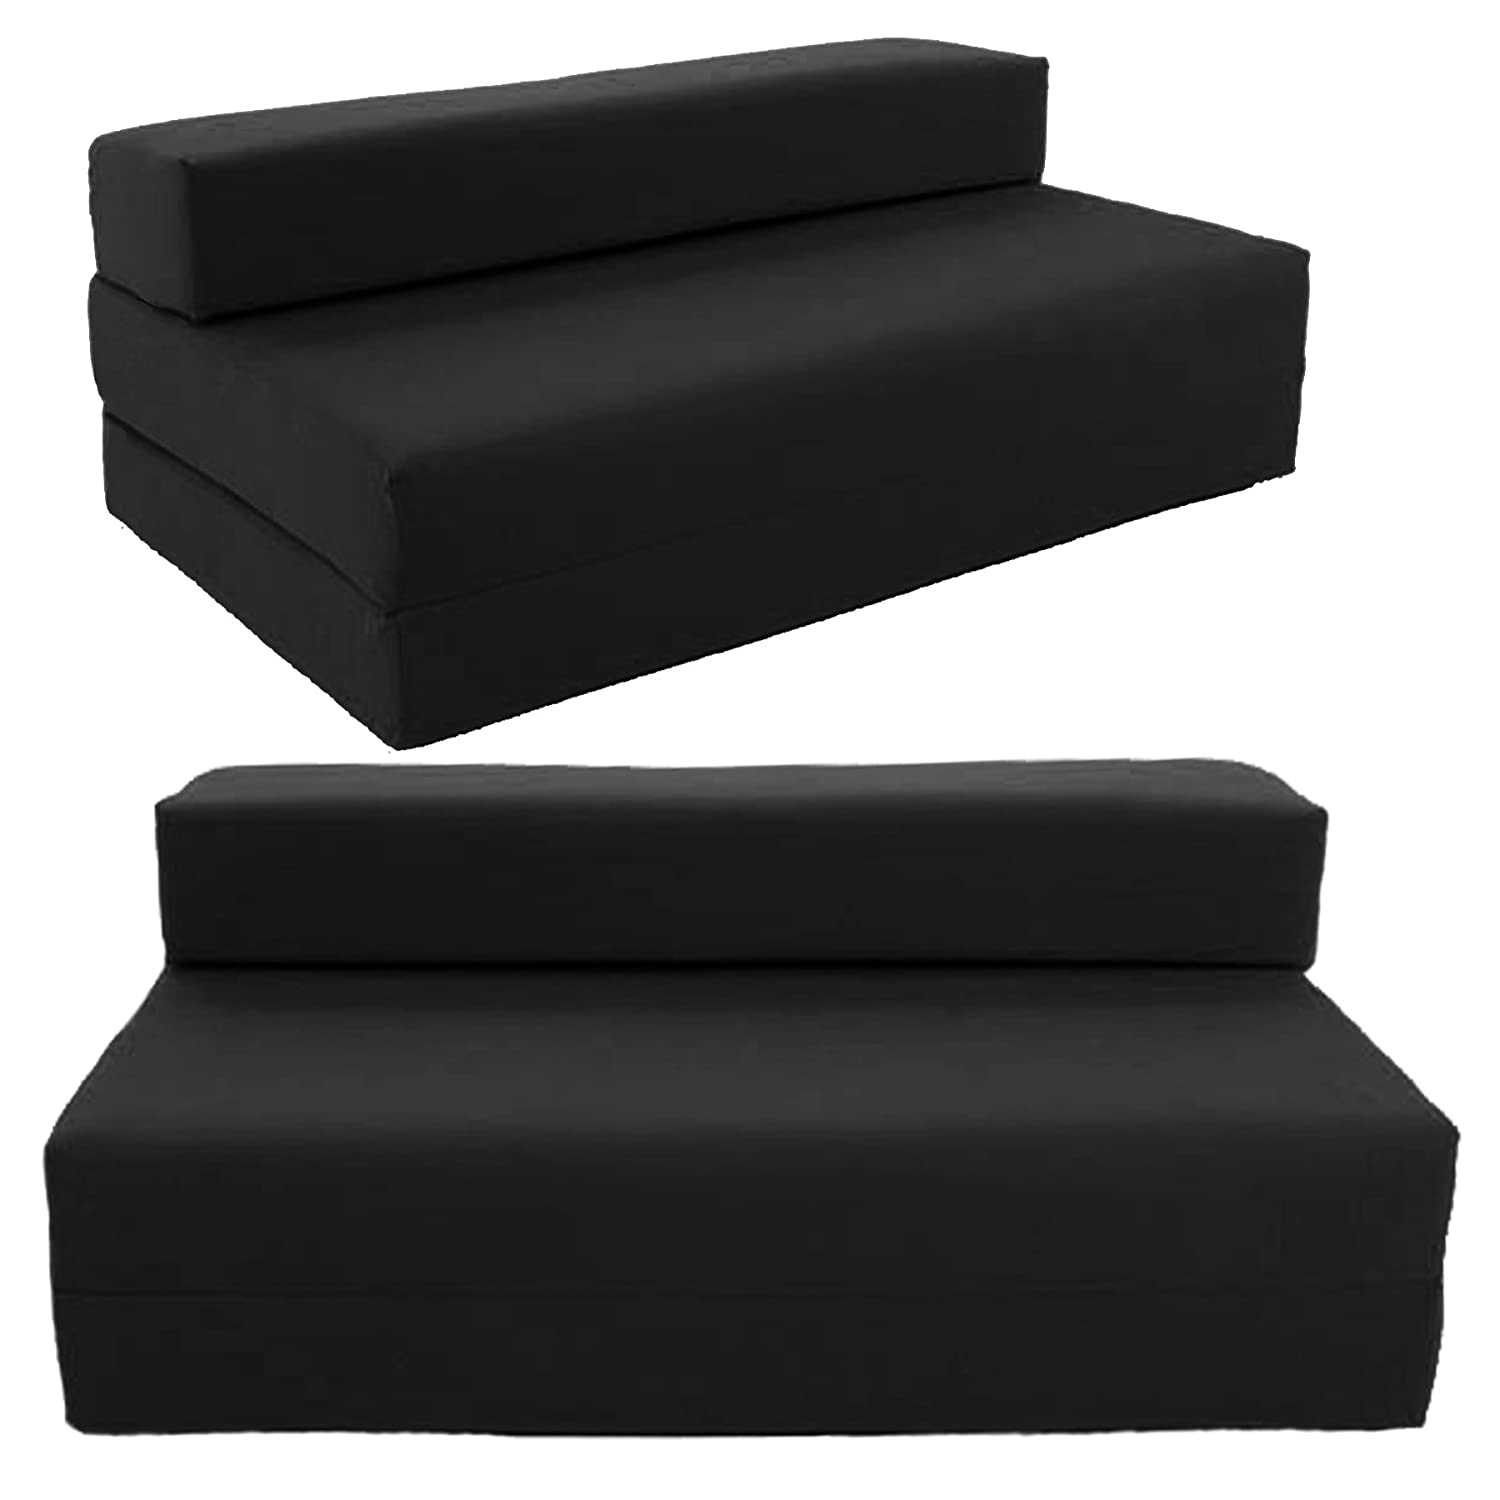 pillow folding foam chair wlmrt hlf canada walmart bed futon